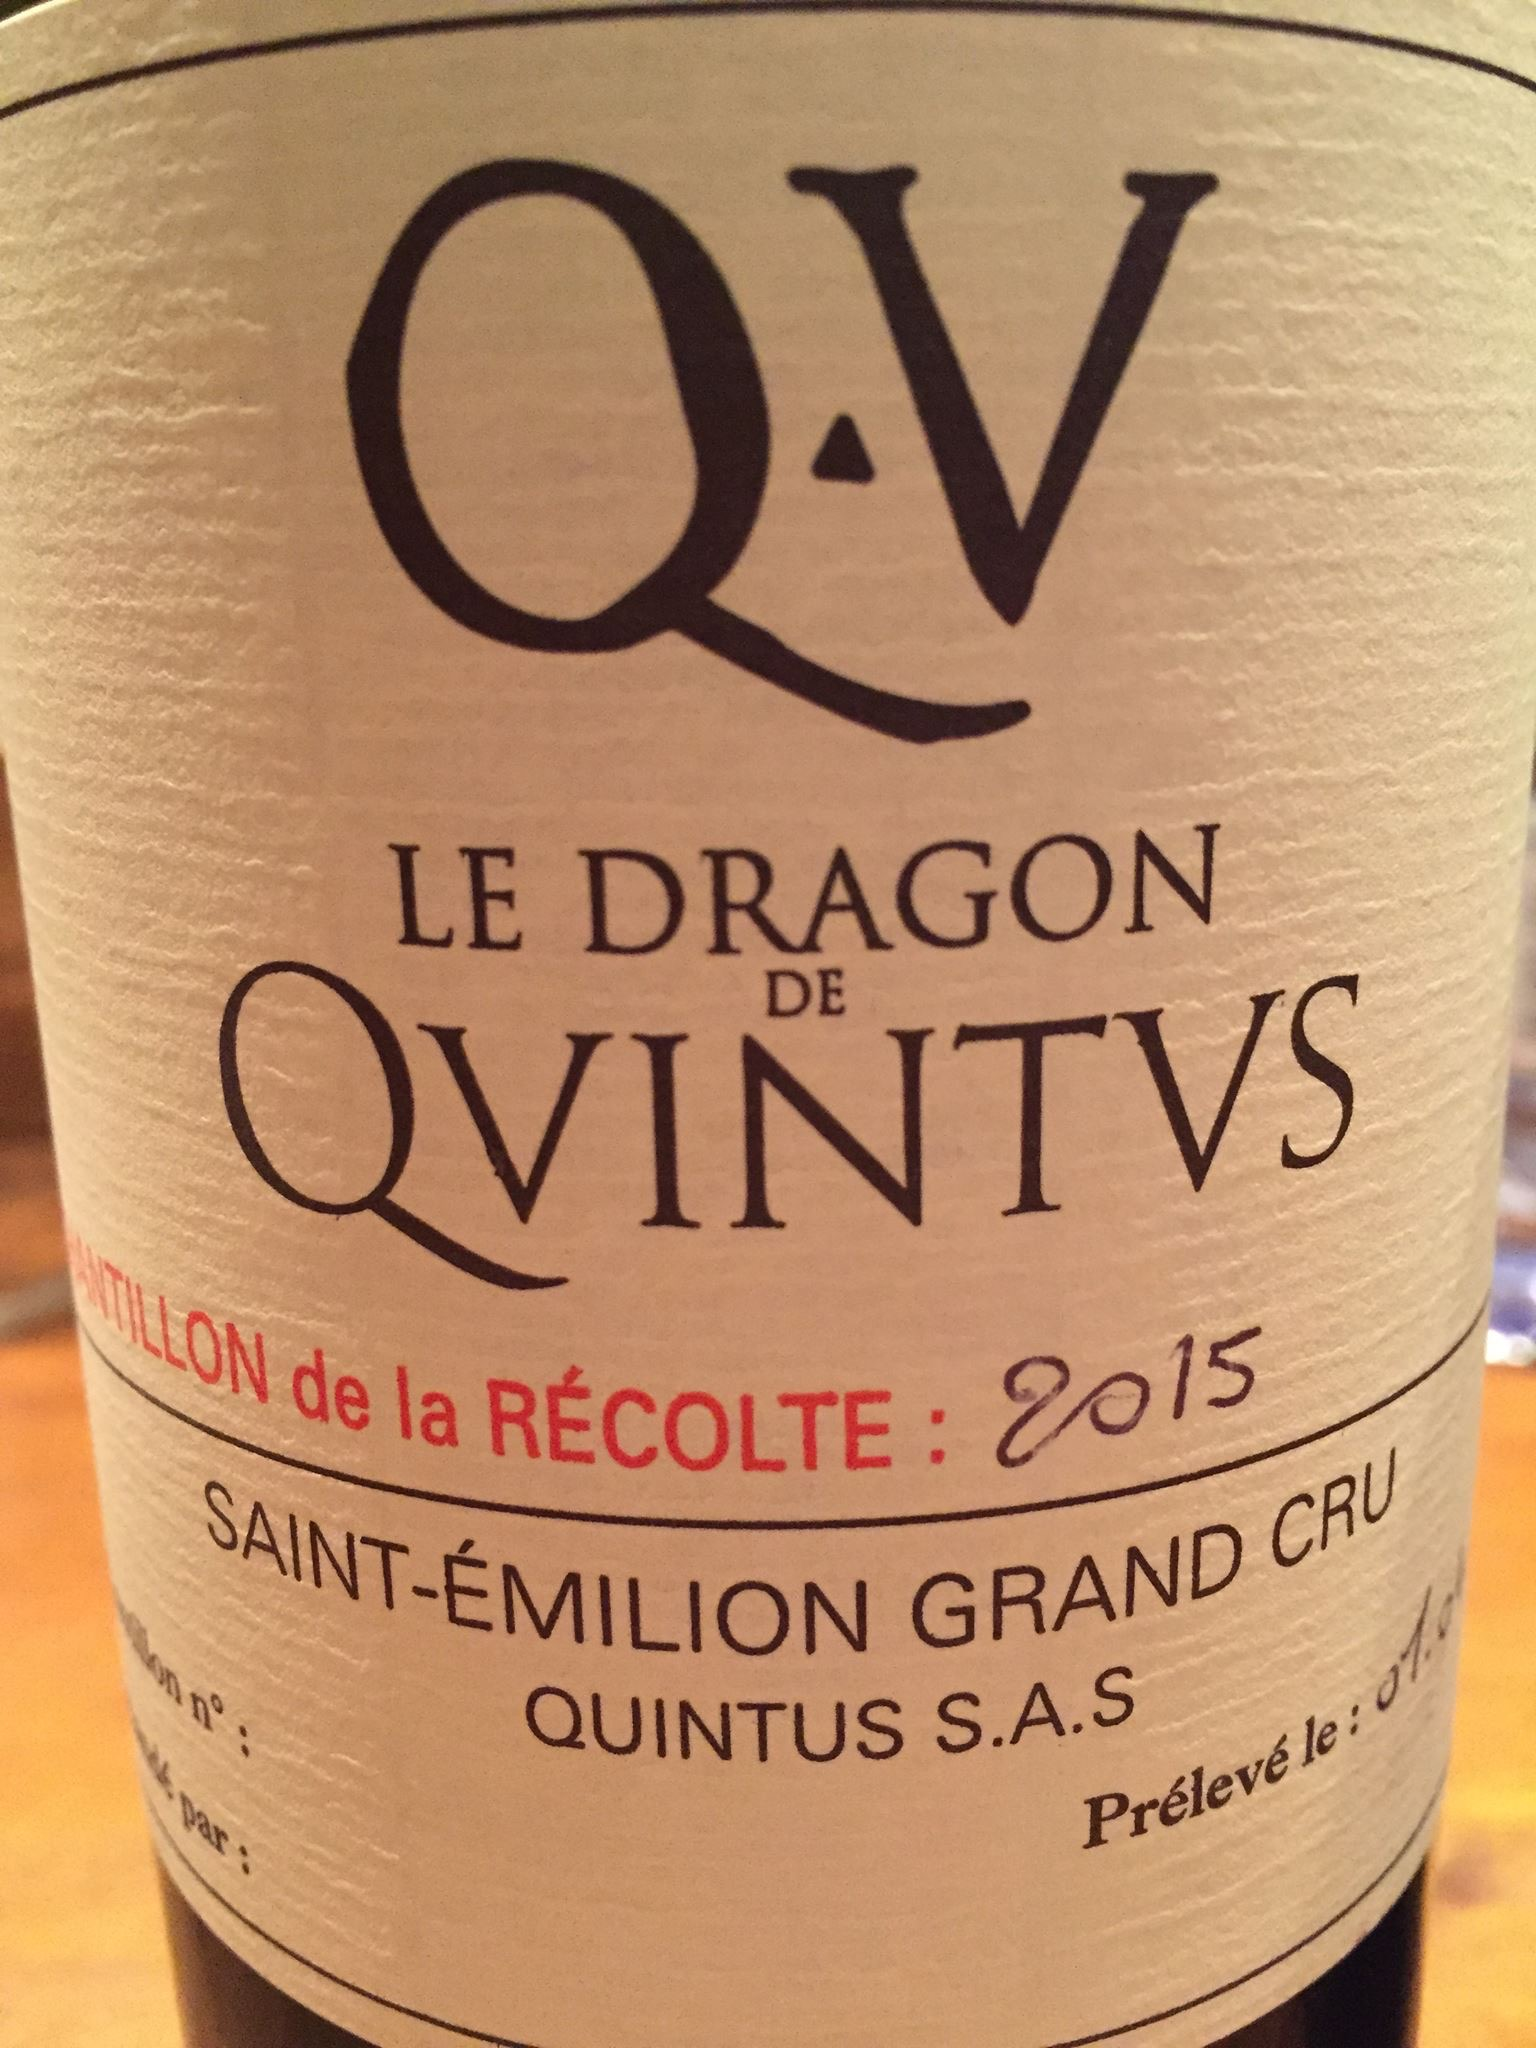 Le Dragon de Quintus 2015 – Saint-Emilion Grand Cru